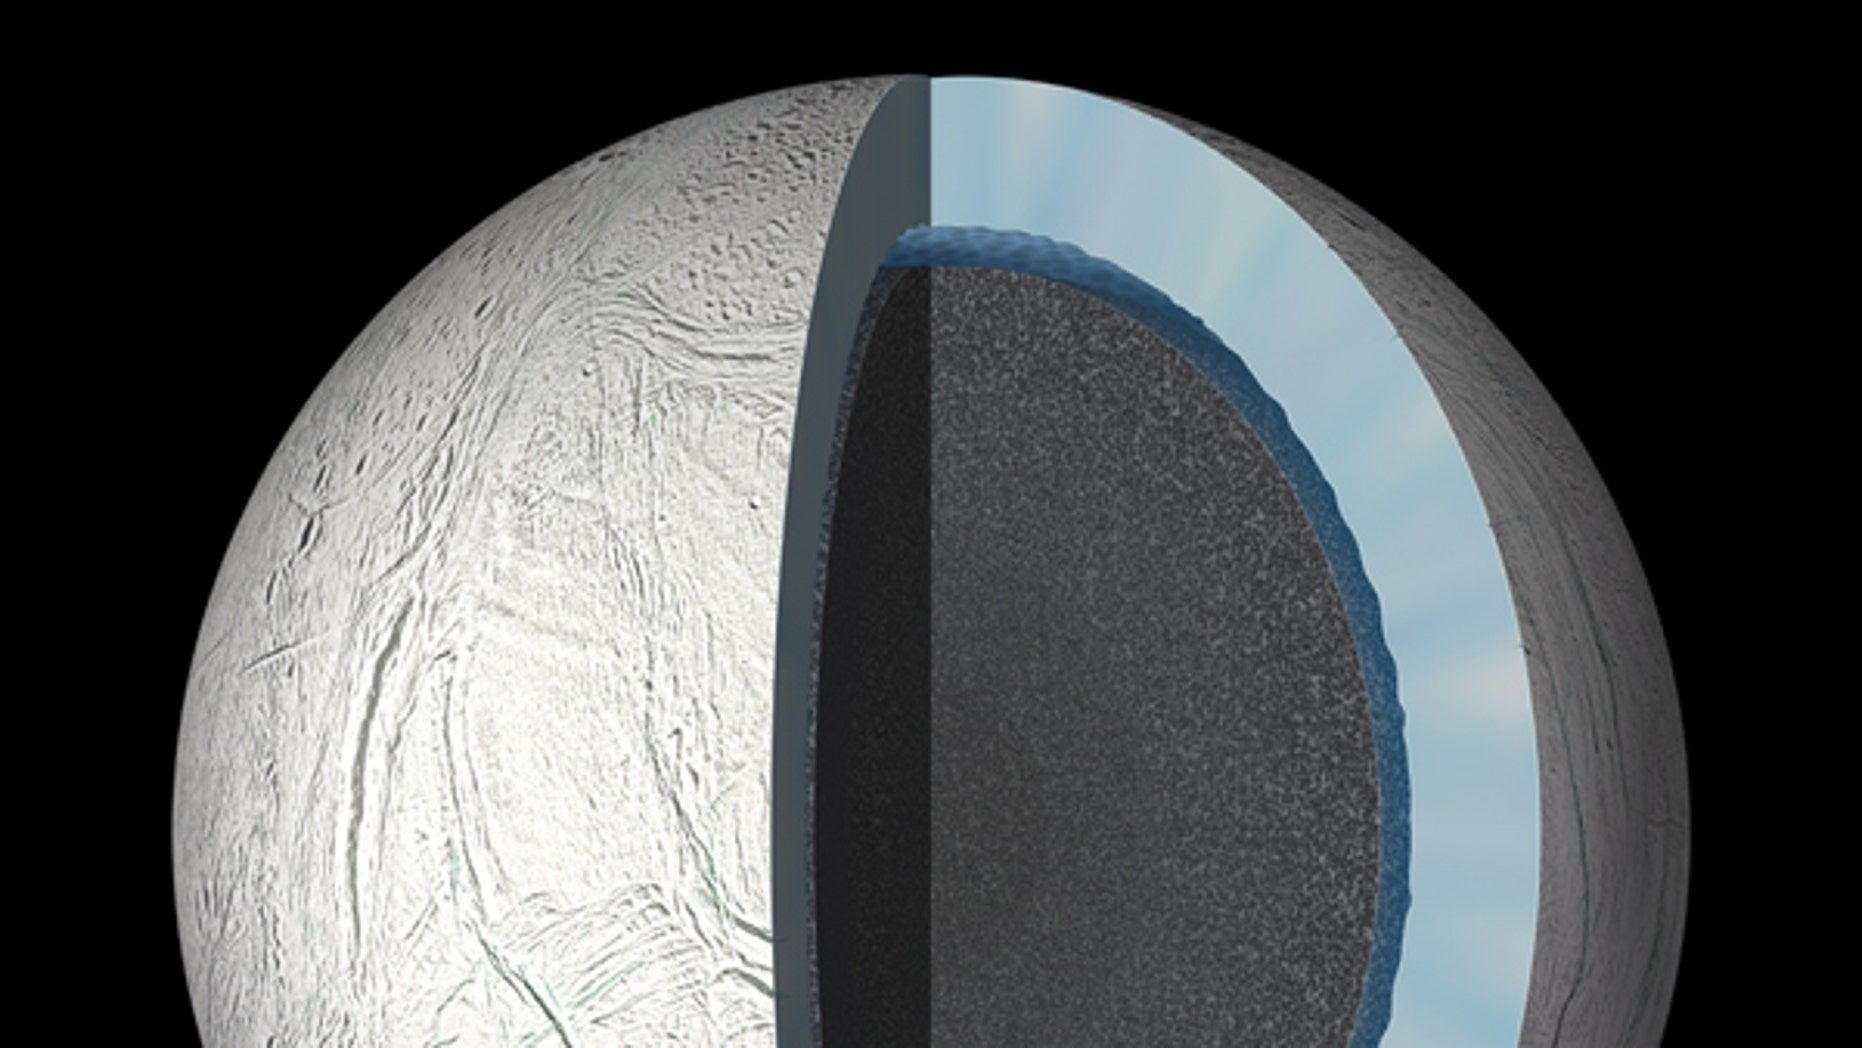 This artist's rendering showing a cutaway view into the interior of Saturn's moon Enceladus.  (NASA/JPL-Caltech)